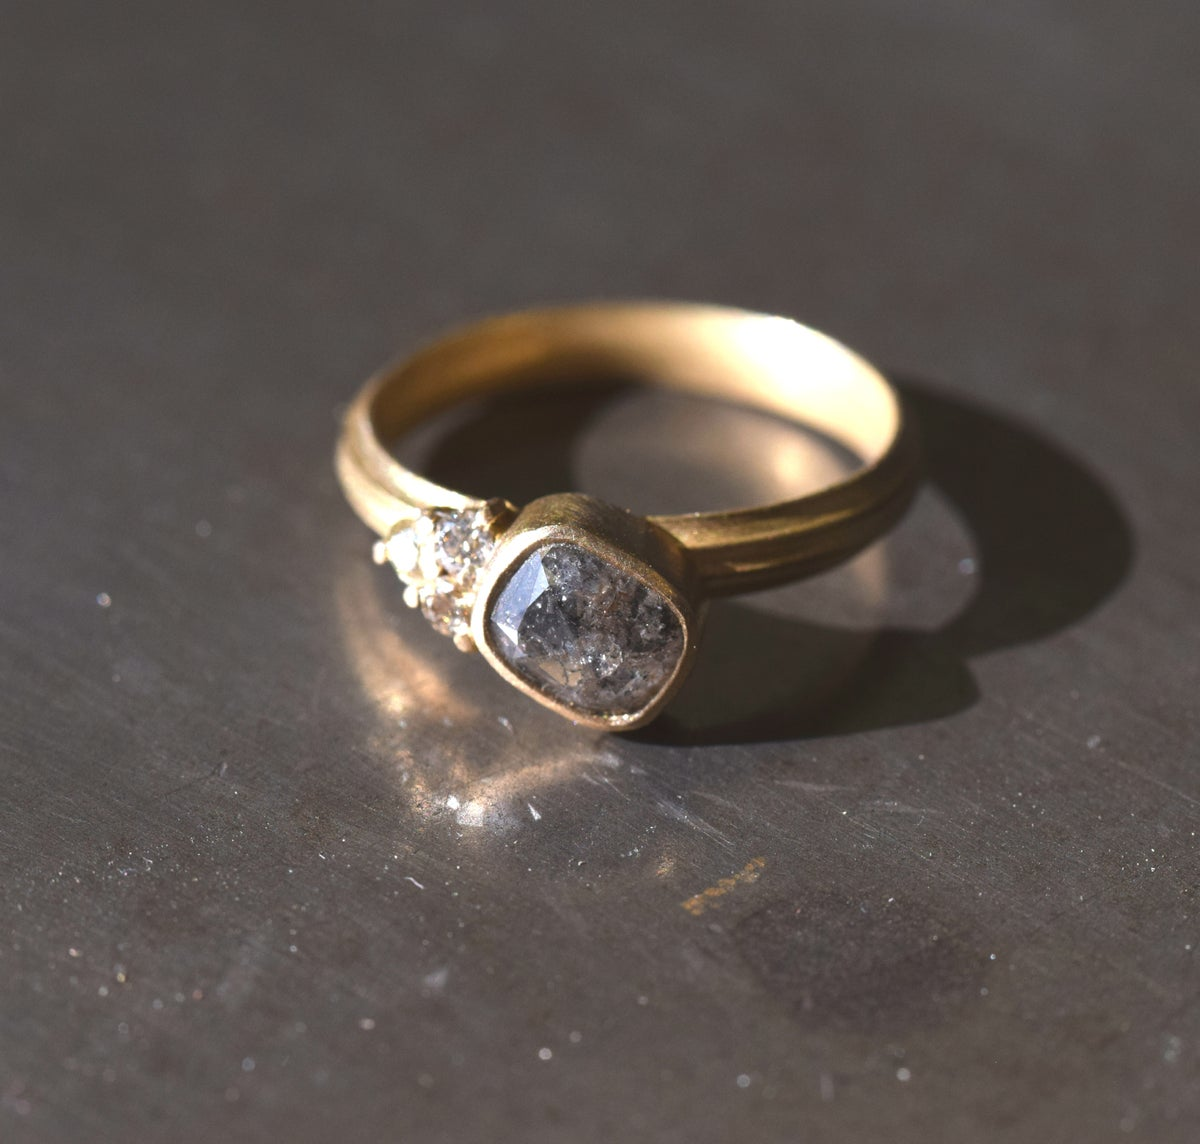 Rose cut and brilliant diamonds in 18ct gold. Engagment ring, bold and contemporaty jewellery